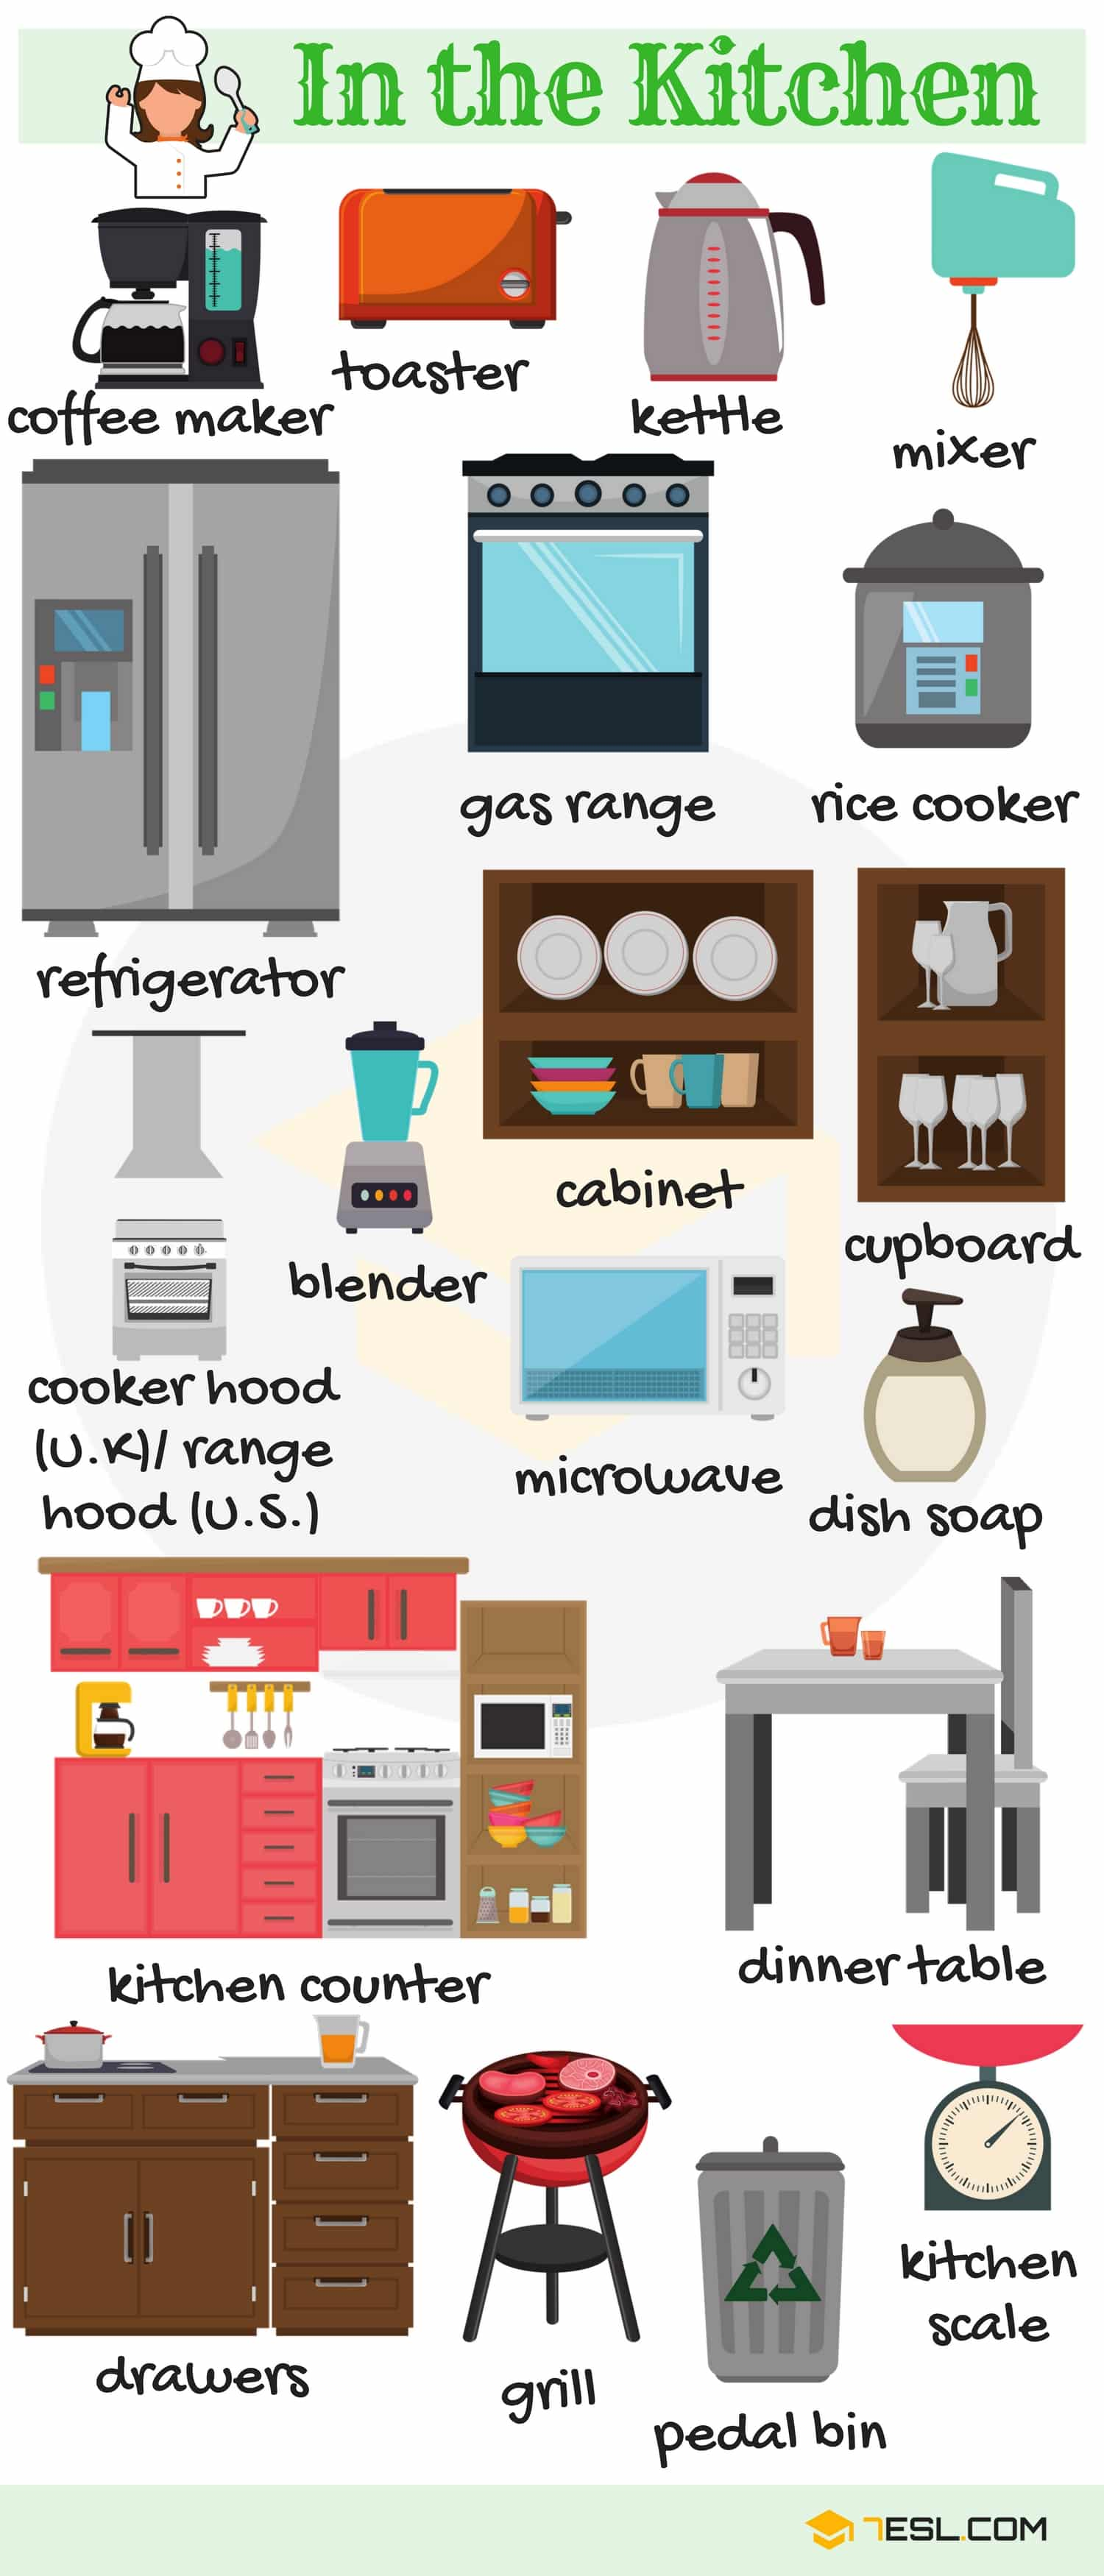 Kitchen Appliances & Gadgets | Image